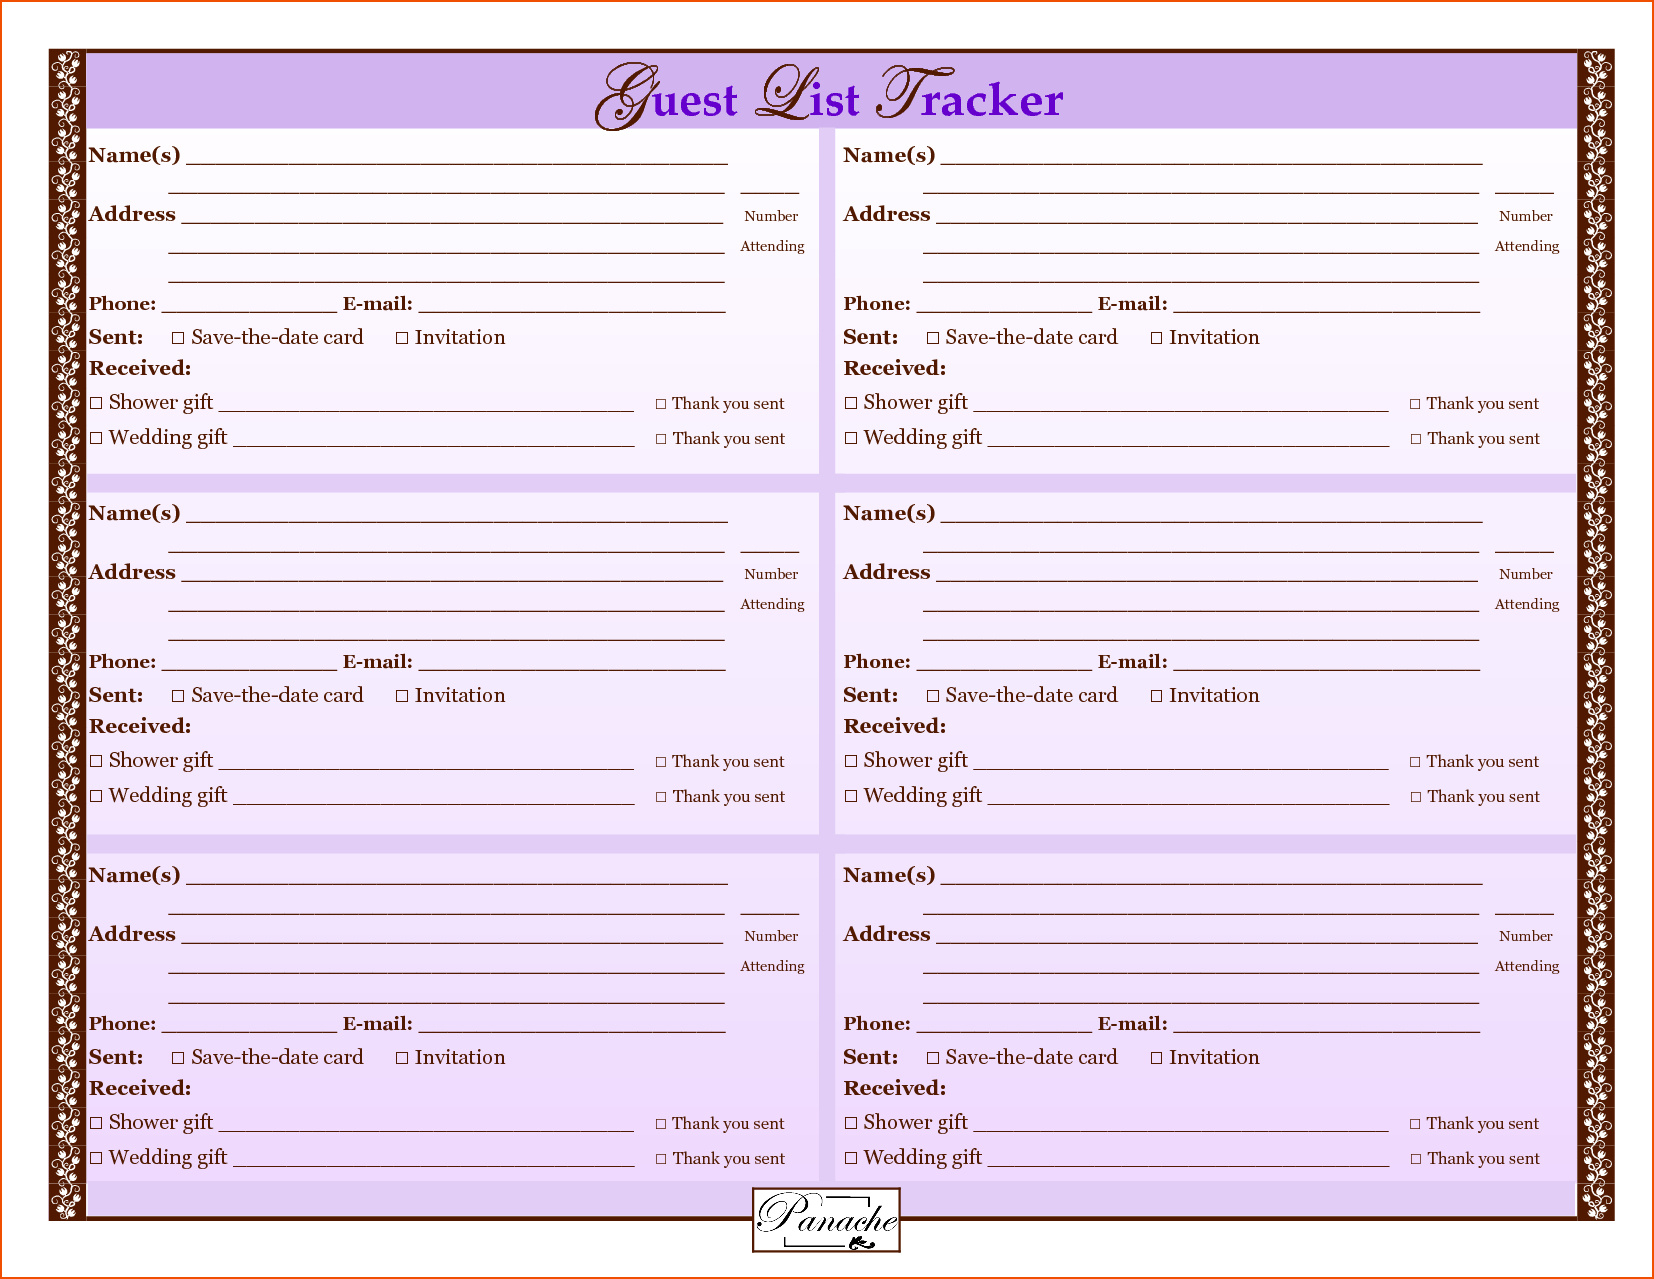 Bridal Shower Planning Spreadsheet Throughout Christmas List Template Excel Awesome Destination Wedding Planning